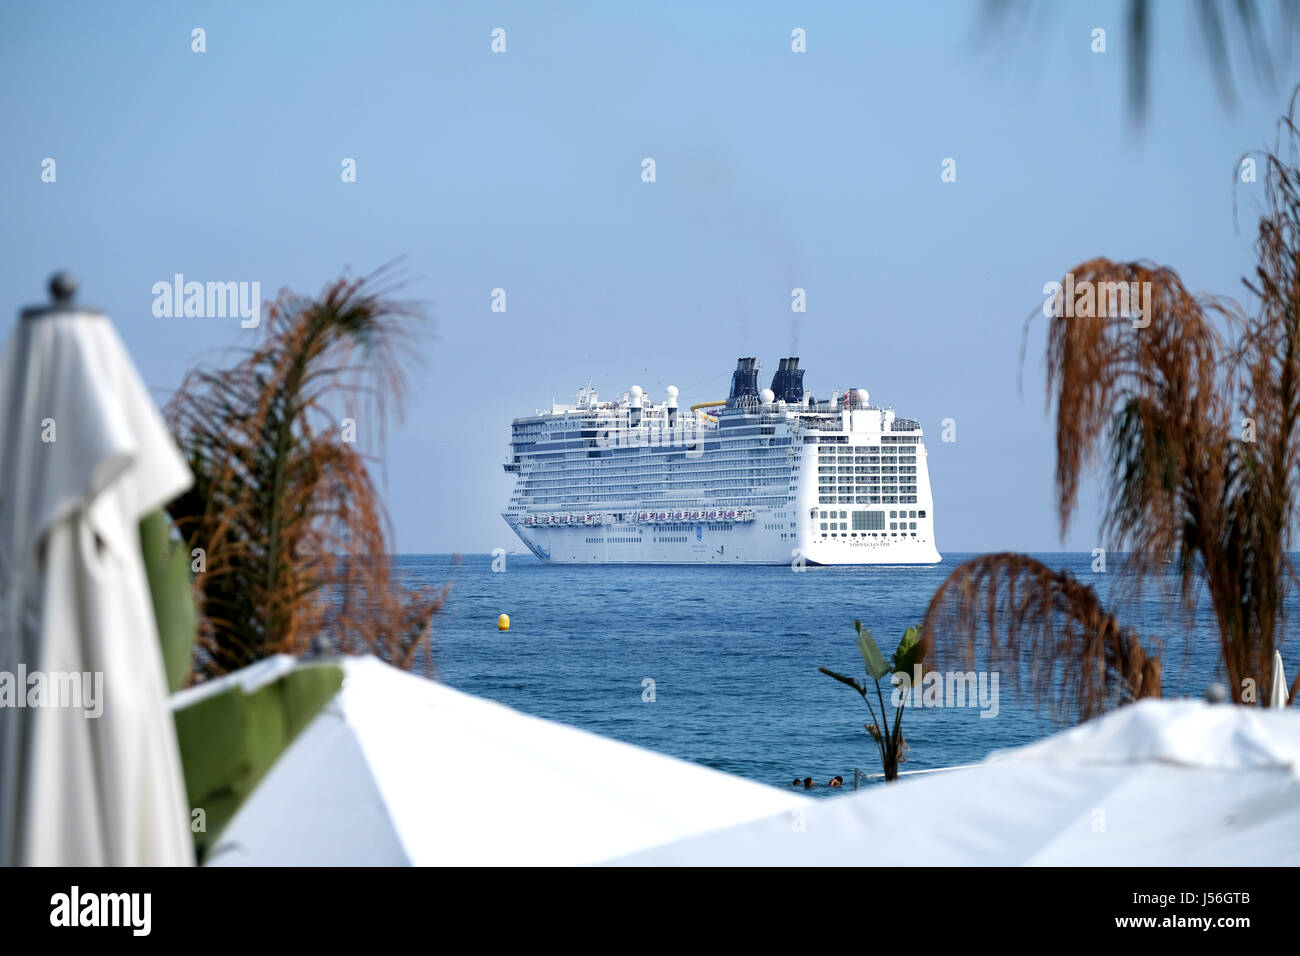 The Norwegian Epic, one of the largest cruise liners in the world, leaving Cannes in the South of France where it - Stock Image